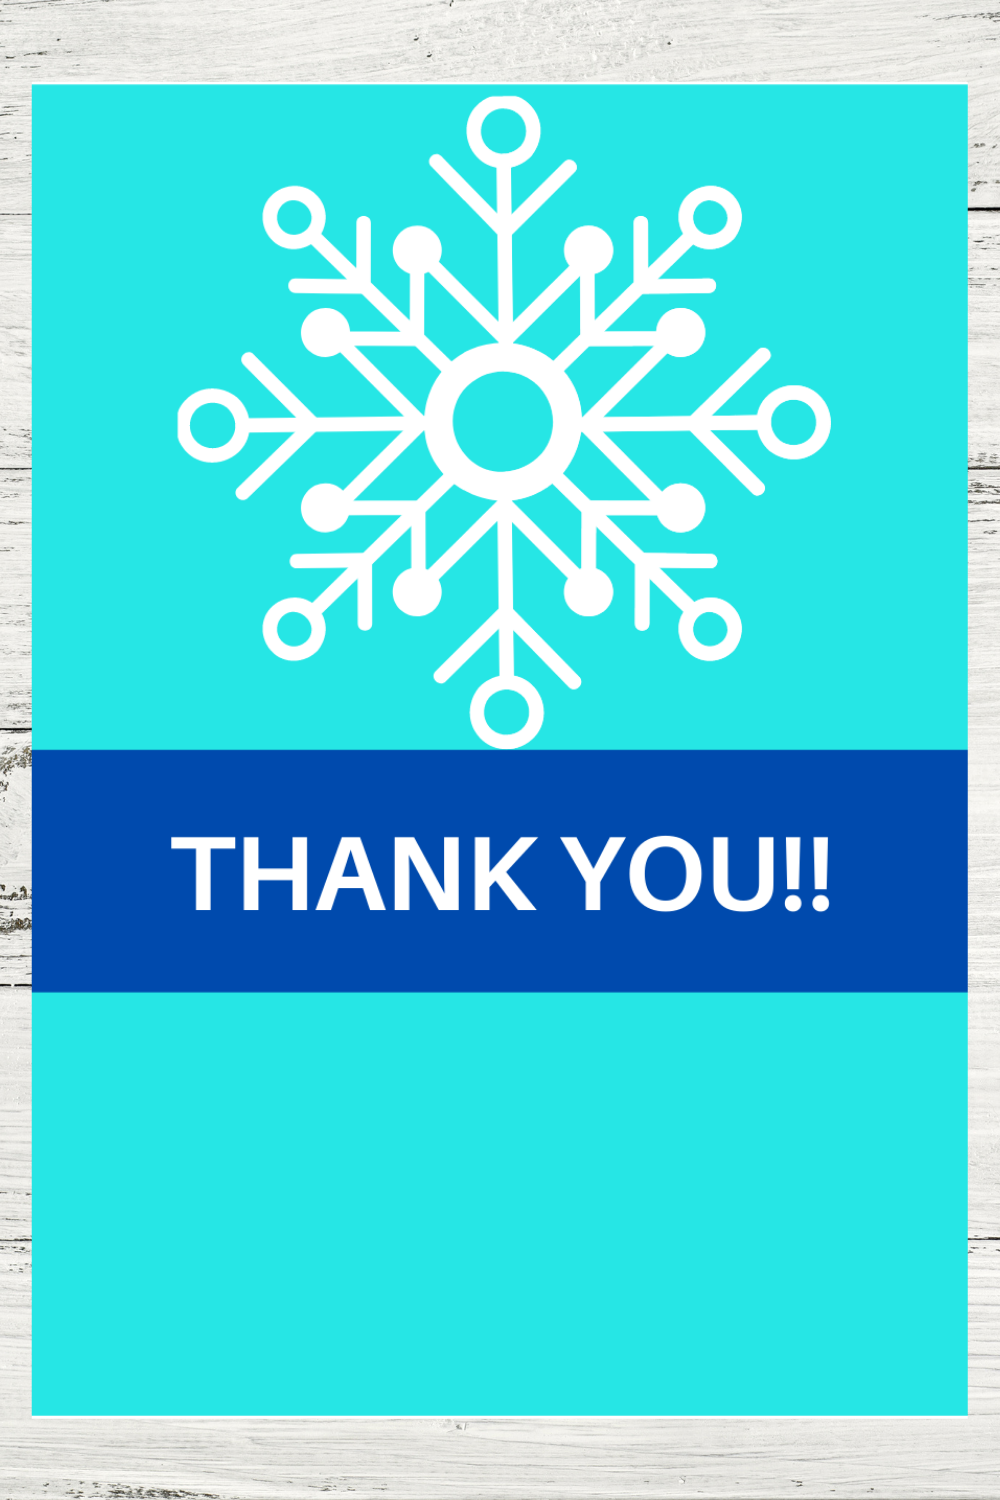 winter themed thank card for a birthday party